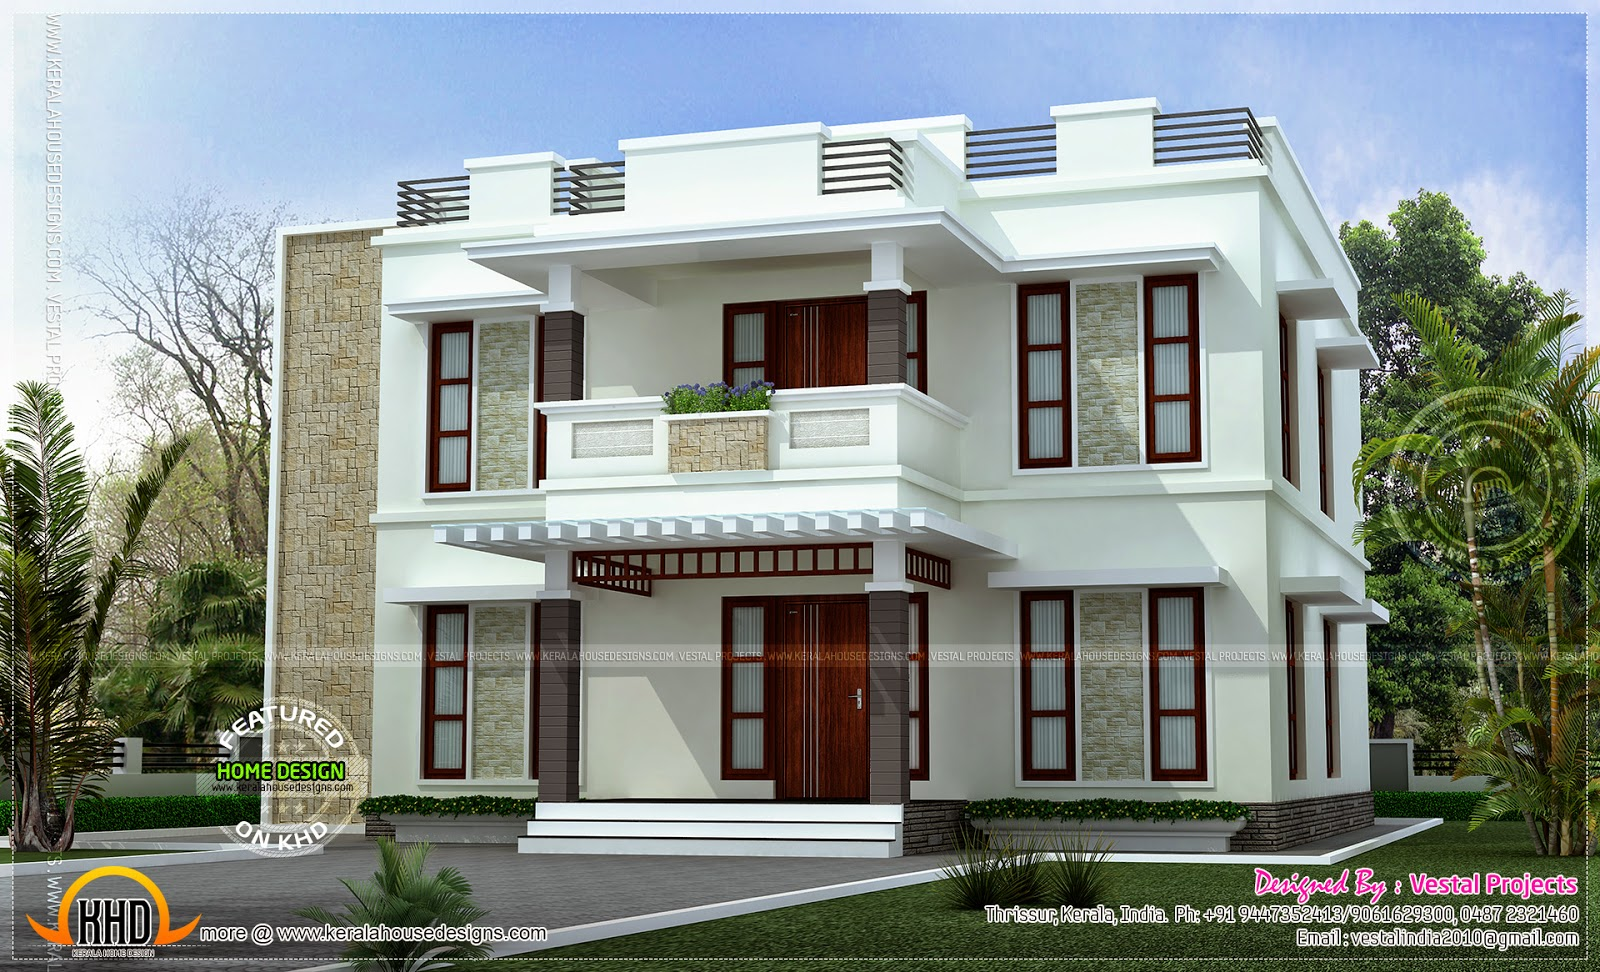 Beautiful home design flat roof style kerala home design for Beautiful home blueprints